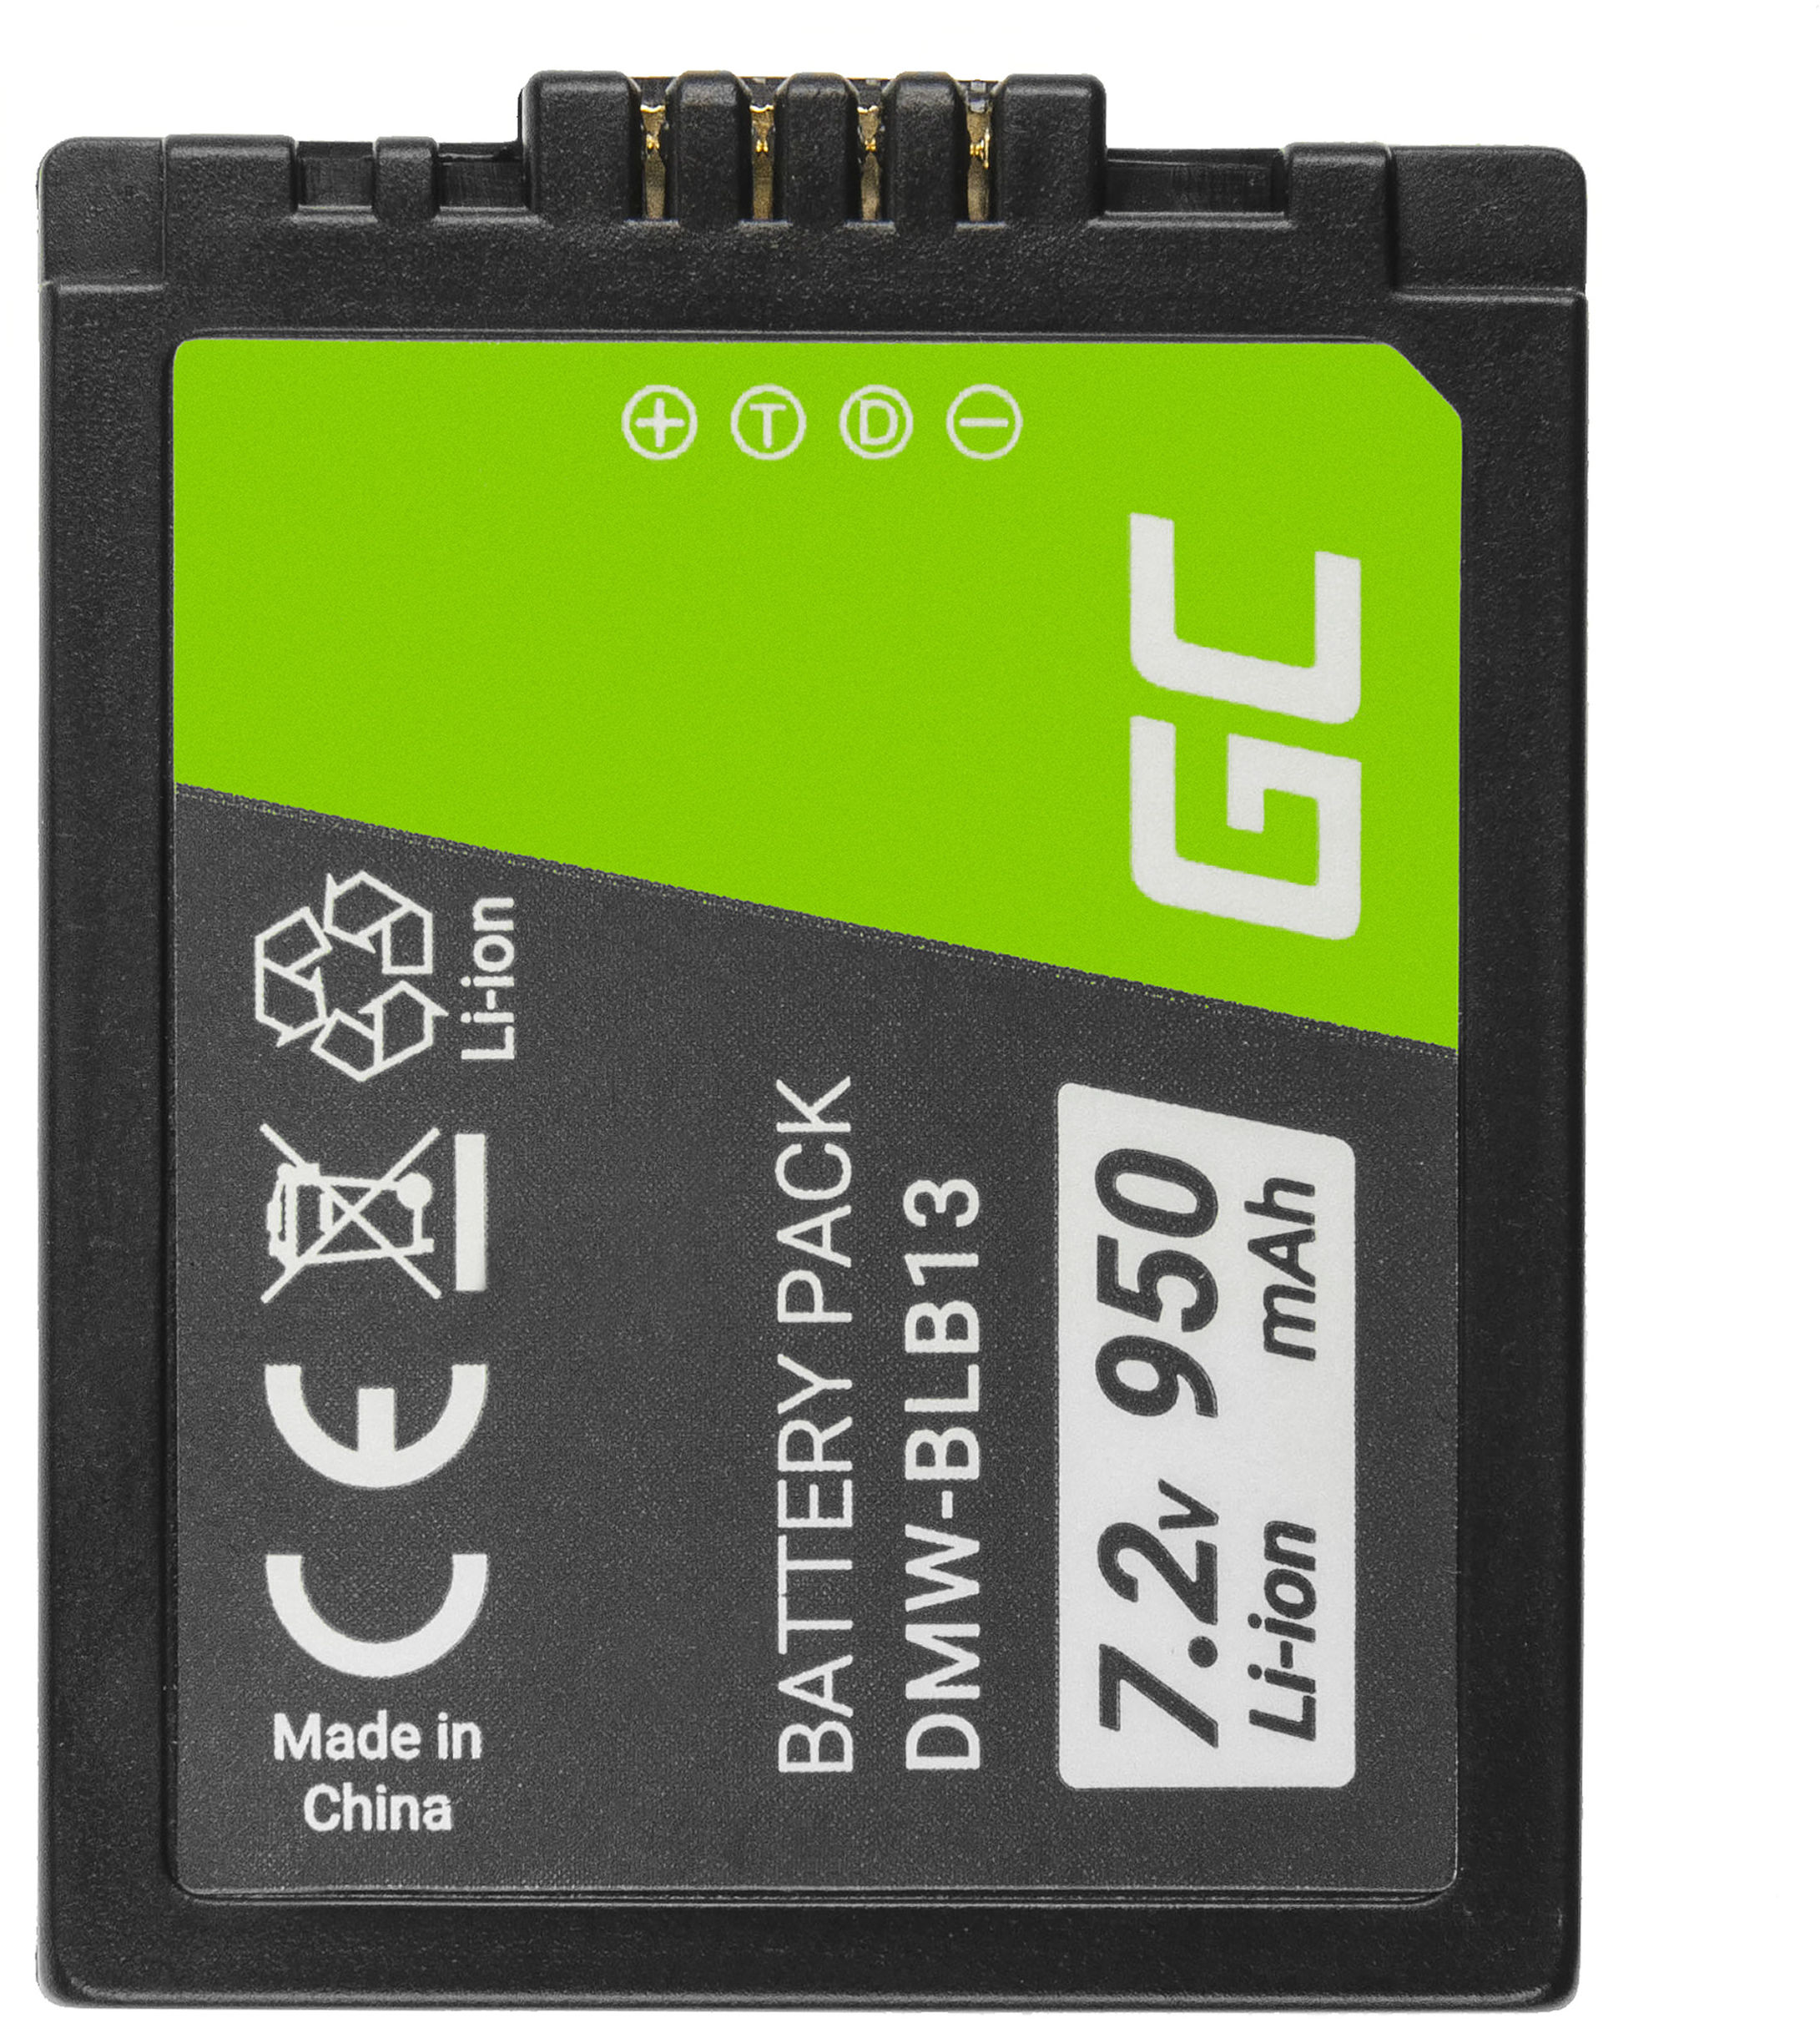 Akumulator Bateria Green Cell  BLB13 do Panasonic Lumix DMC-G1KEB G1WEG G1KEG G1WEB GH1 GF1 G1R, Full Decoded, 7.2V 950mAh